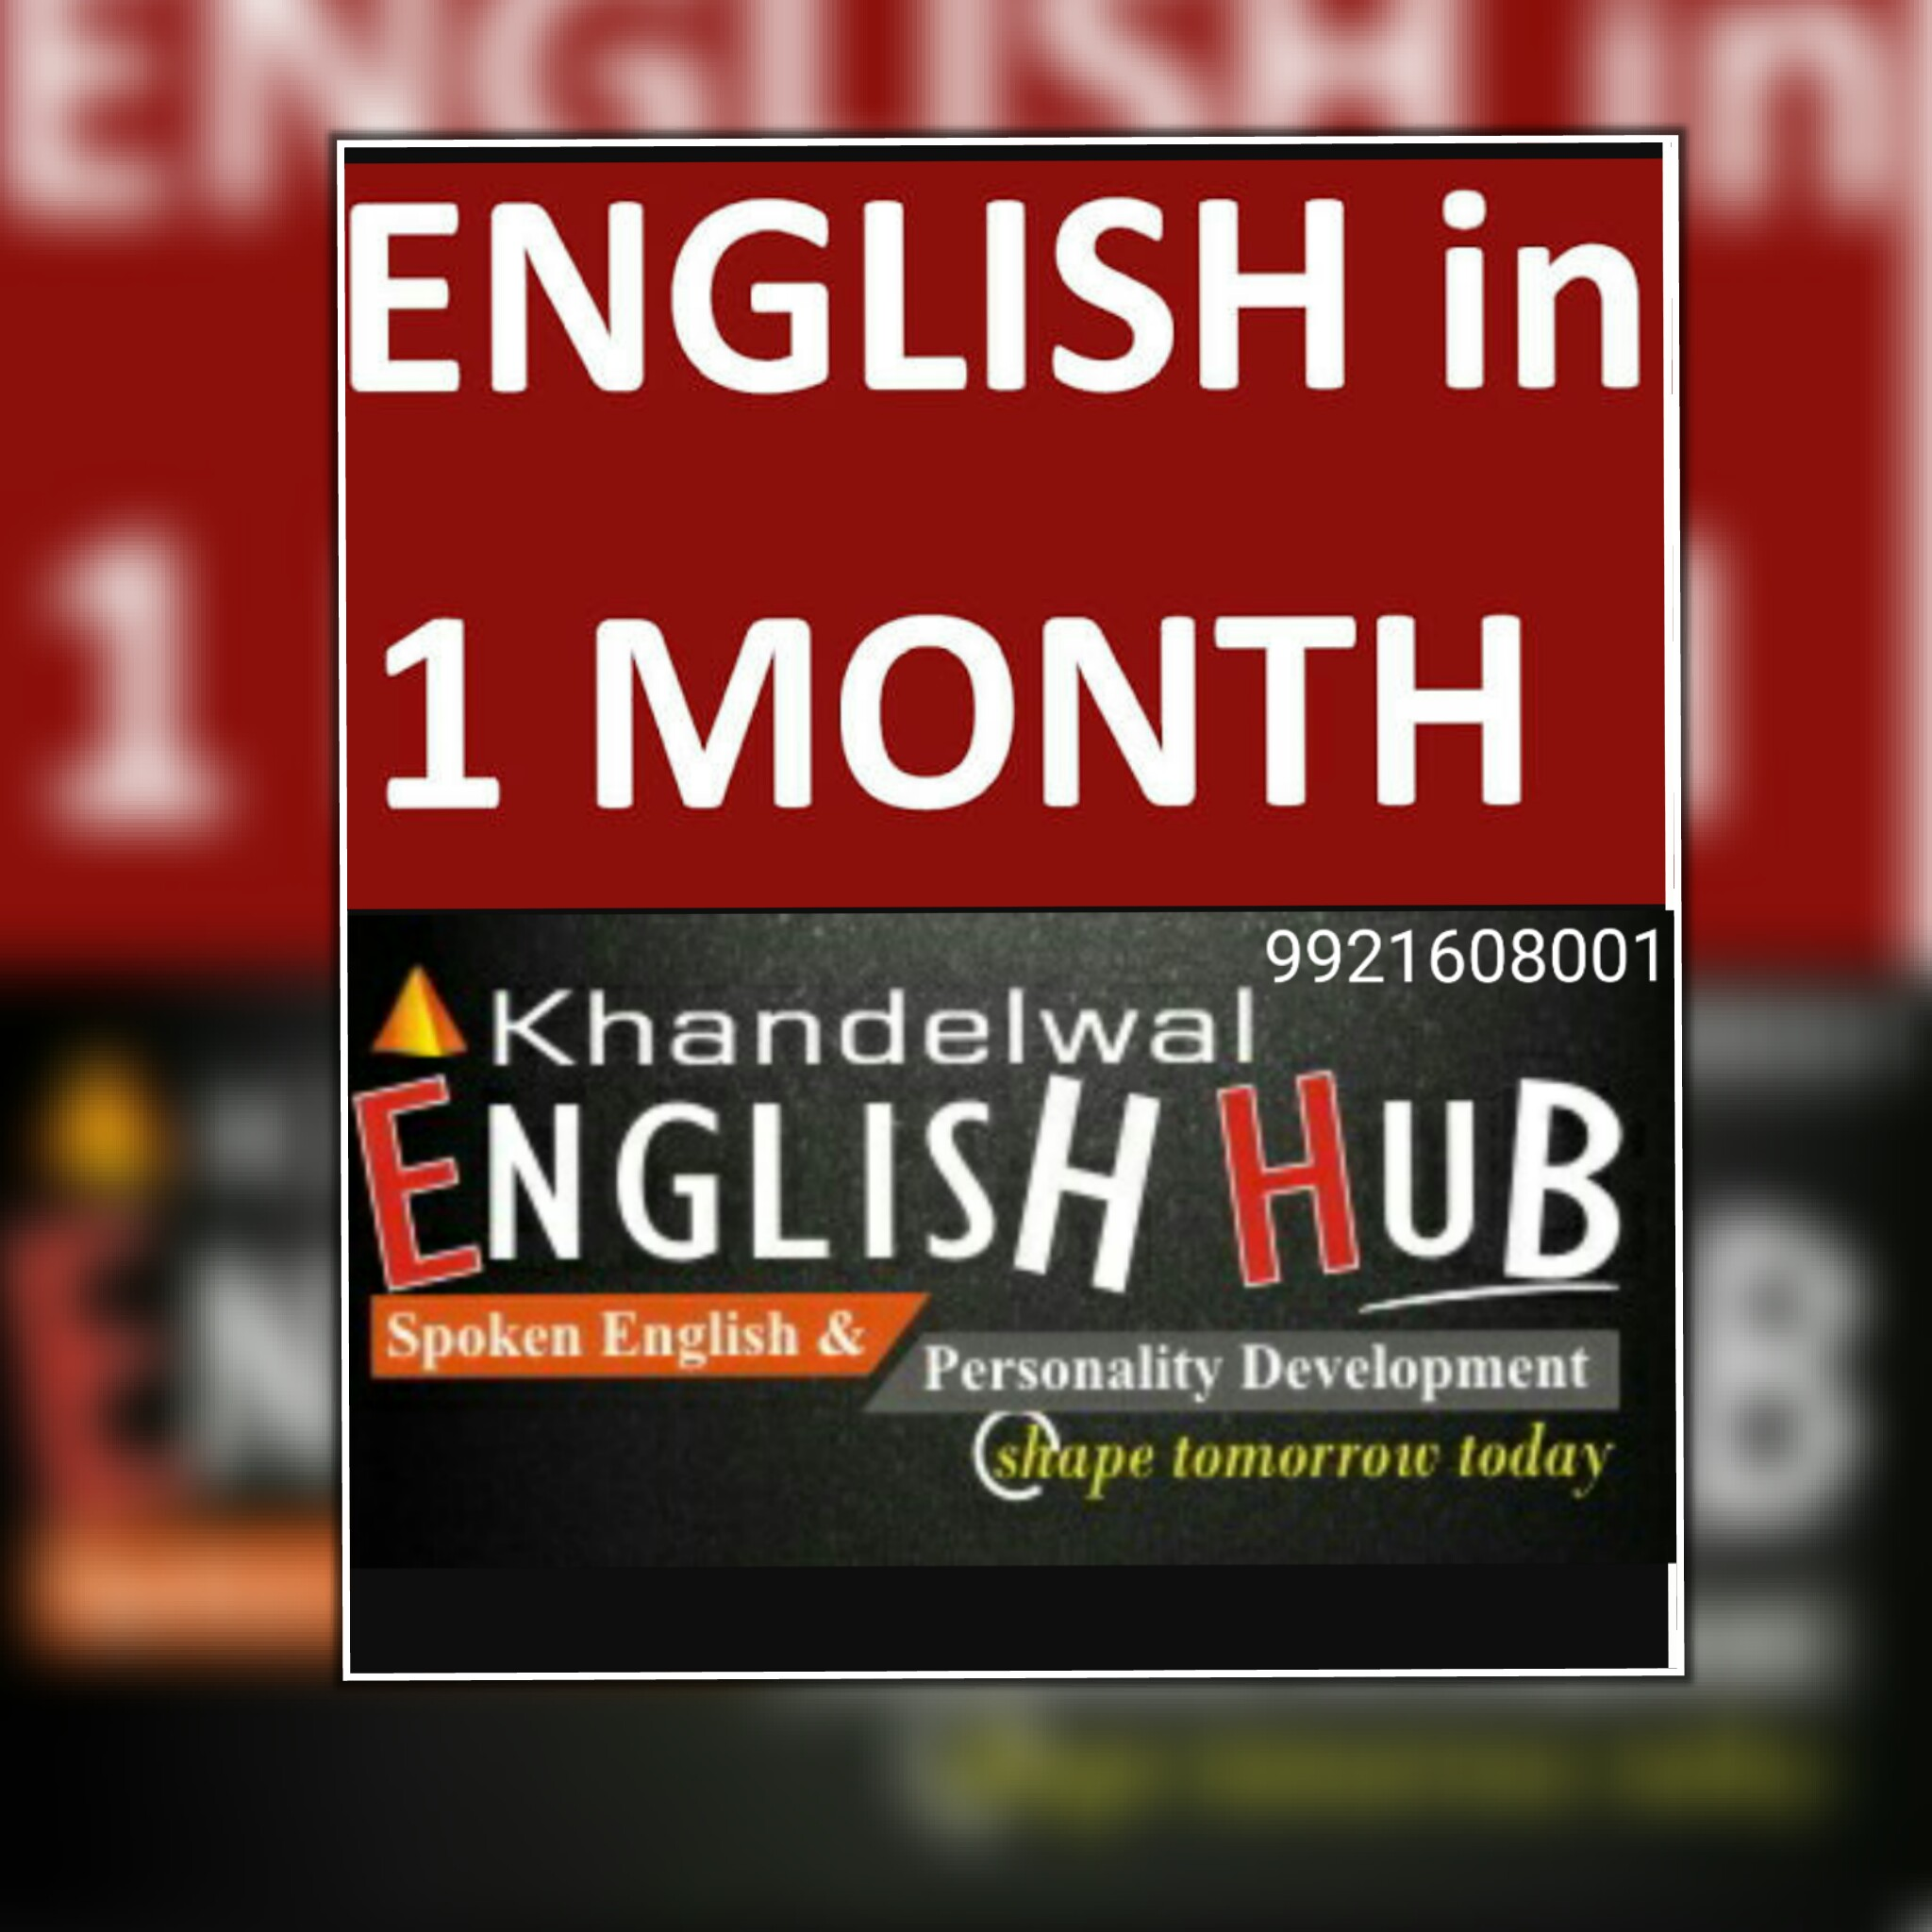 Amravati Khandelwal English Hub